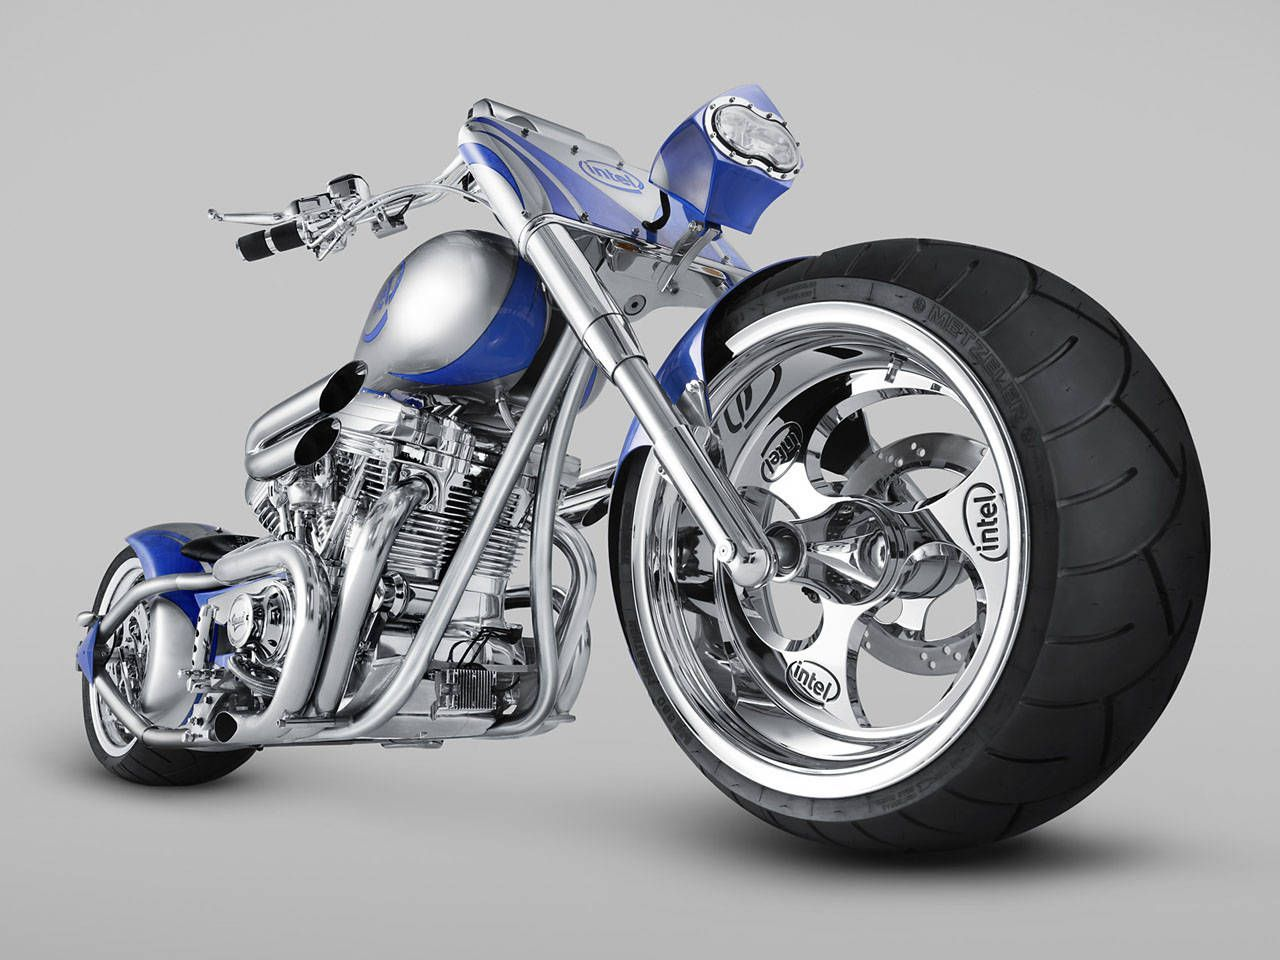 1280x960 Intel / Orange County Choppers Photo Gallery - Images of the OCC ...